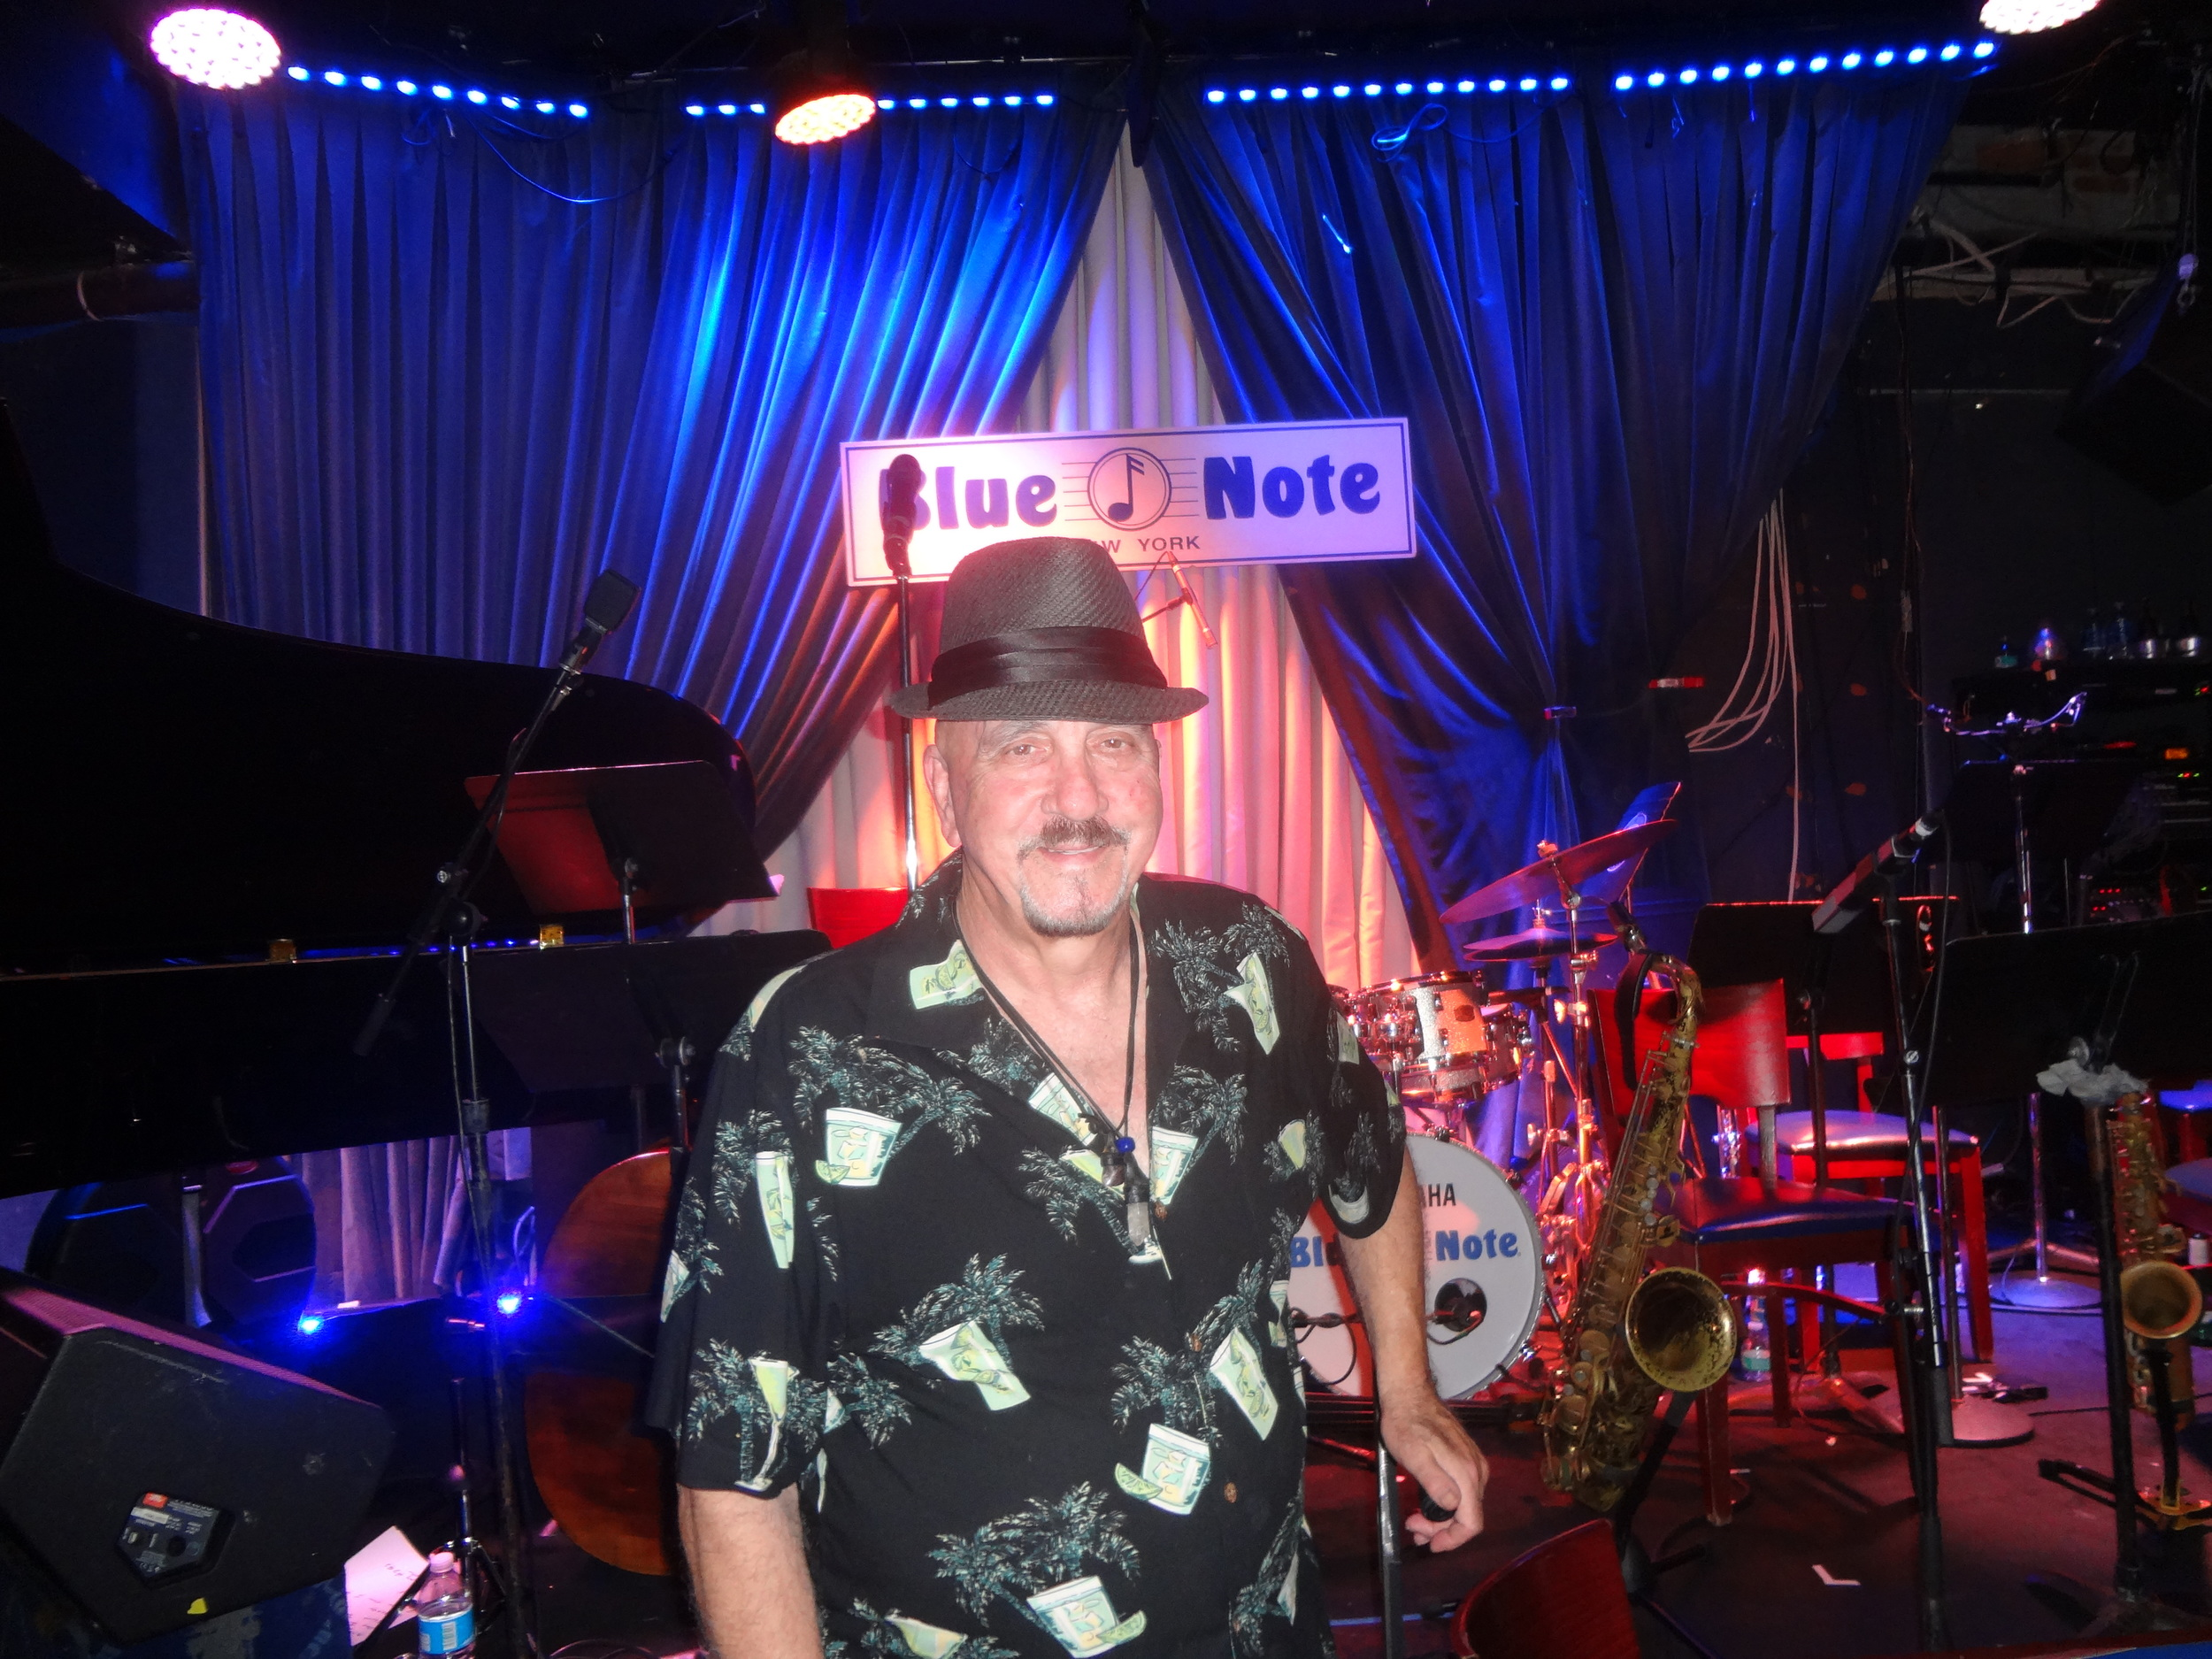 """Rich Pulin honored at the """"Blue Note Jazz Club"""" New York City - July 11, 2016 for Clifford Brown/Rich Pulin lyrics and arrangement """"It's You La Rue"""""""